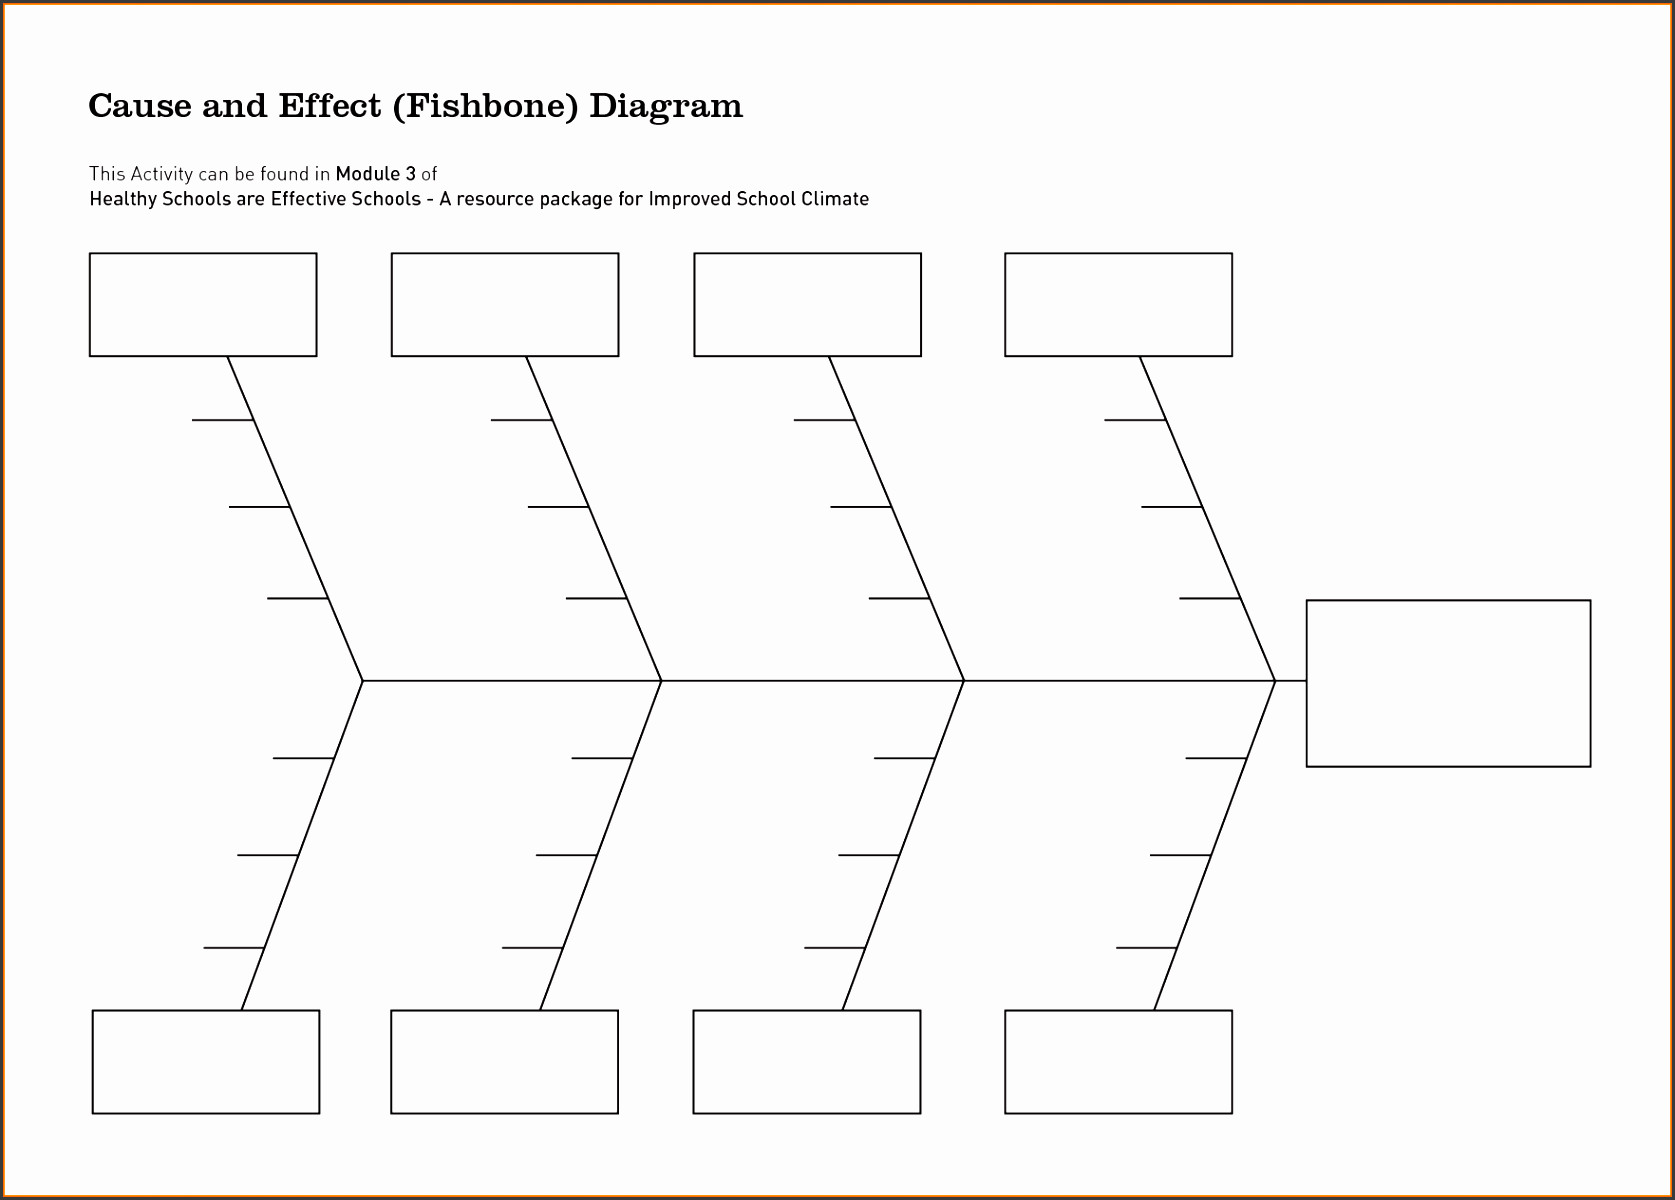 Cause and Effect Diagram Template 6 Cause and Effect Diagram Template Sampletemplatess